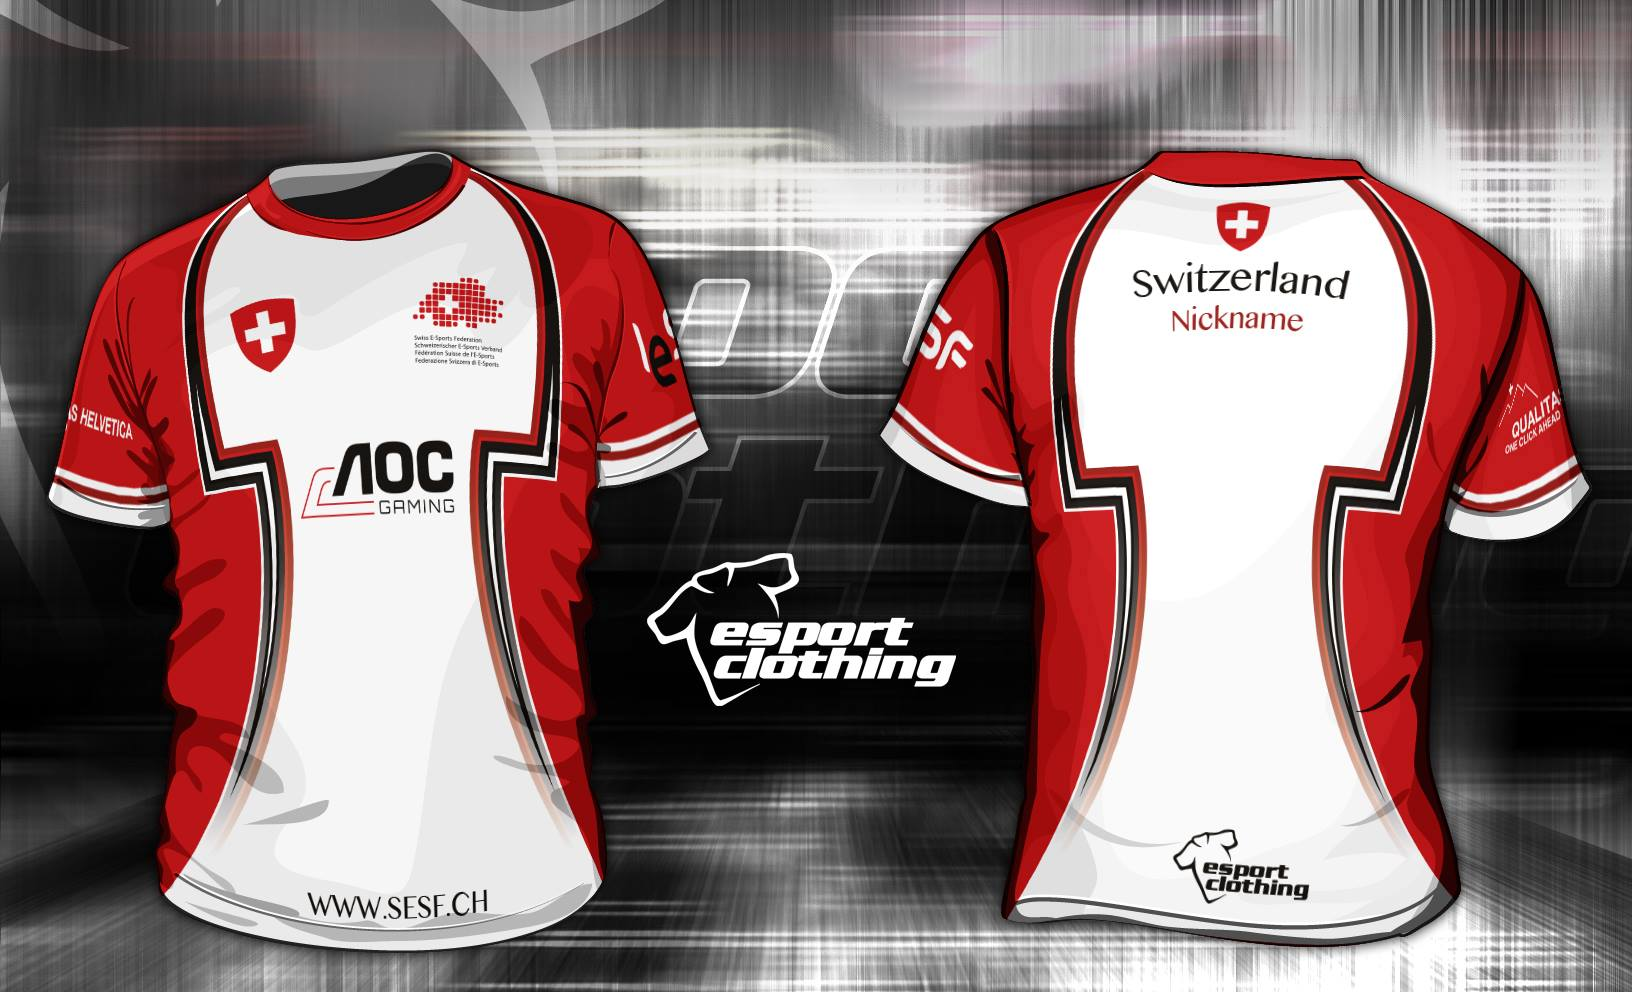 Swiss E-Sports Federation - Athlete Short Sleeve Jersey